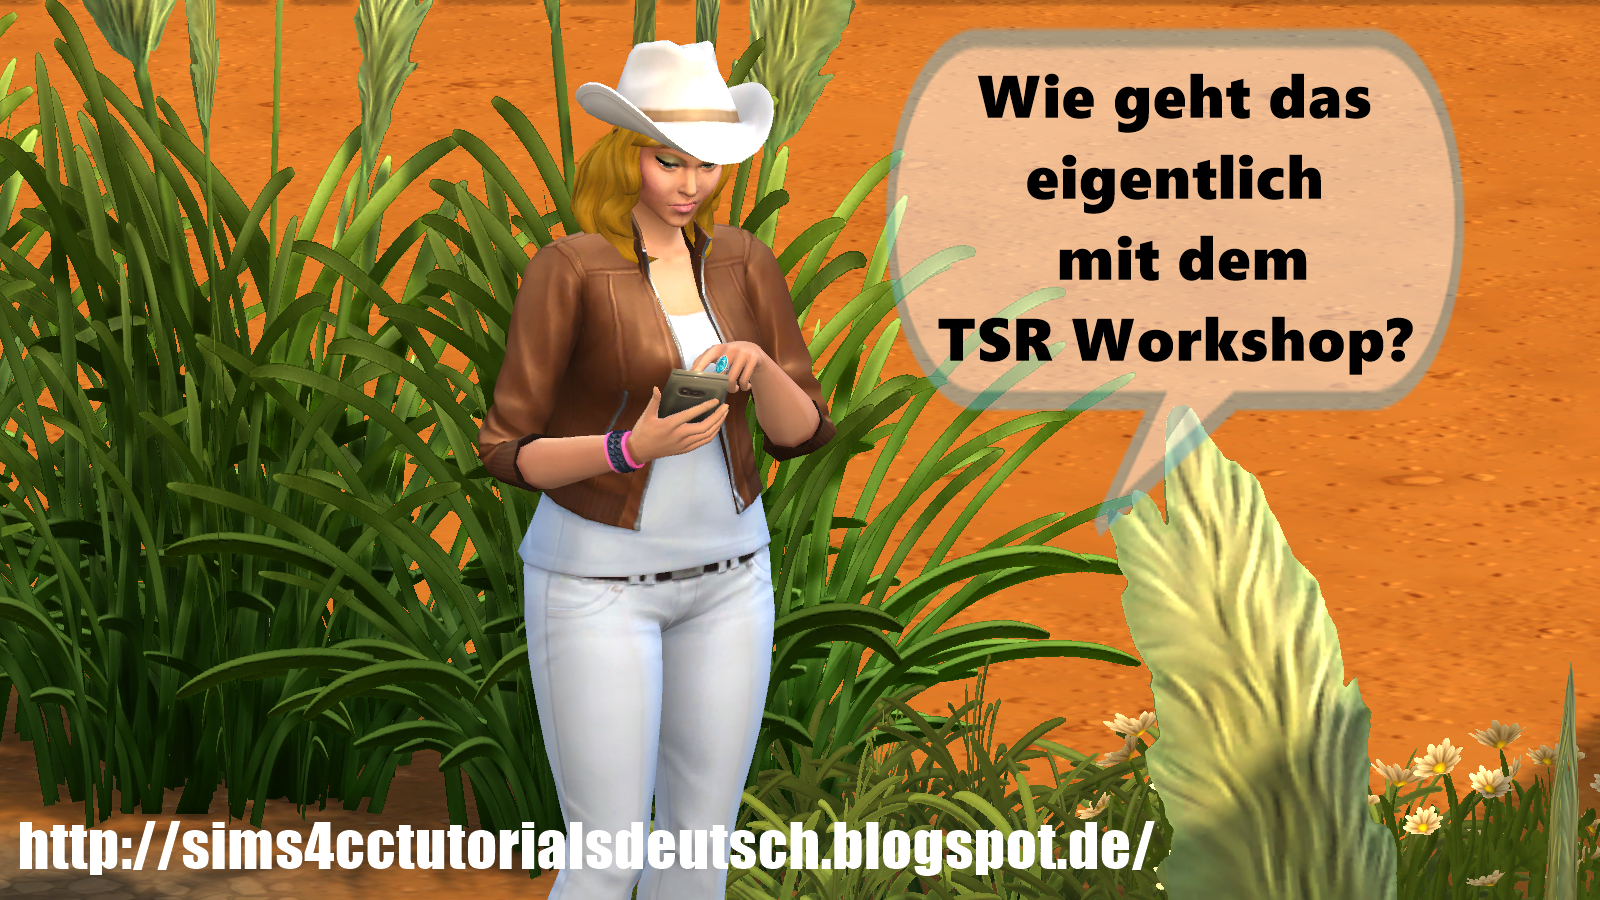 Tsr Sims 4 Teppiche Sims 4 Cc 39s Turorials Deutsch Tsr Workshop